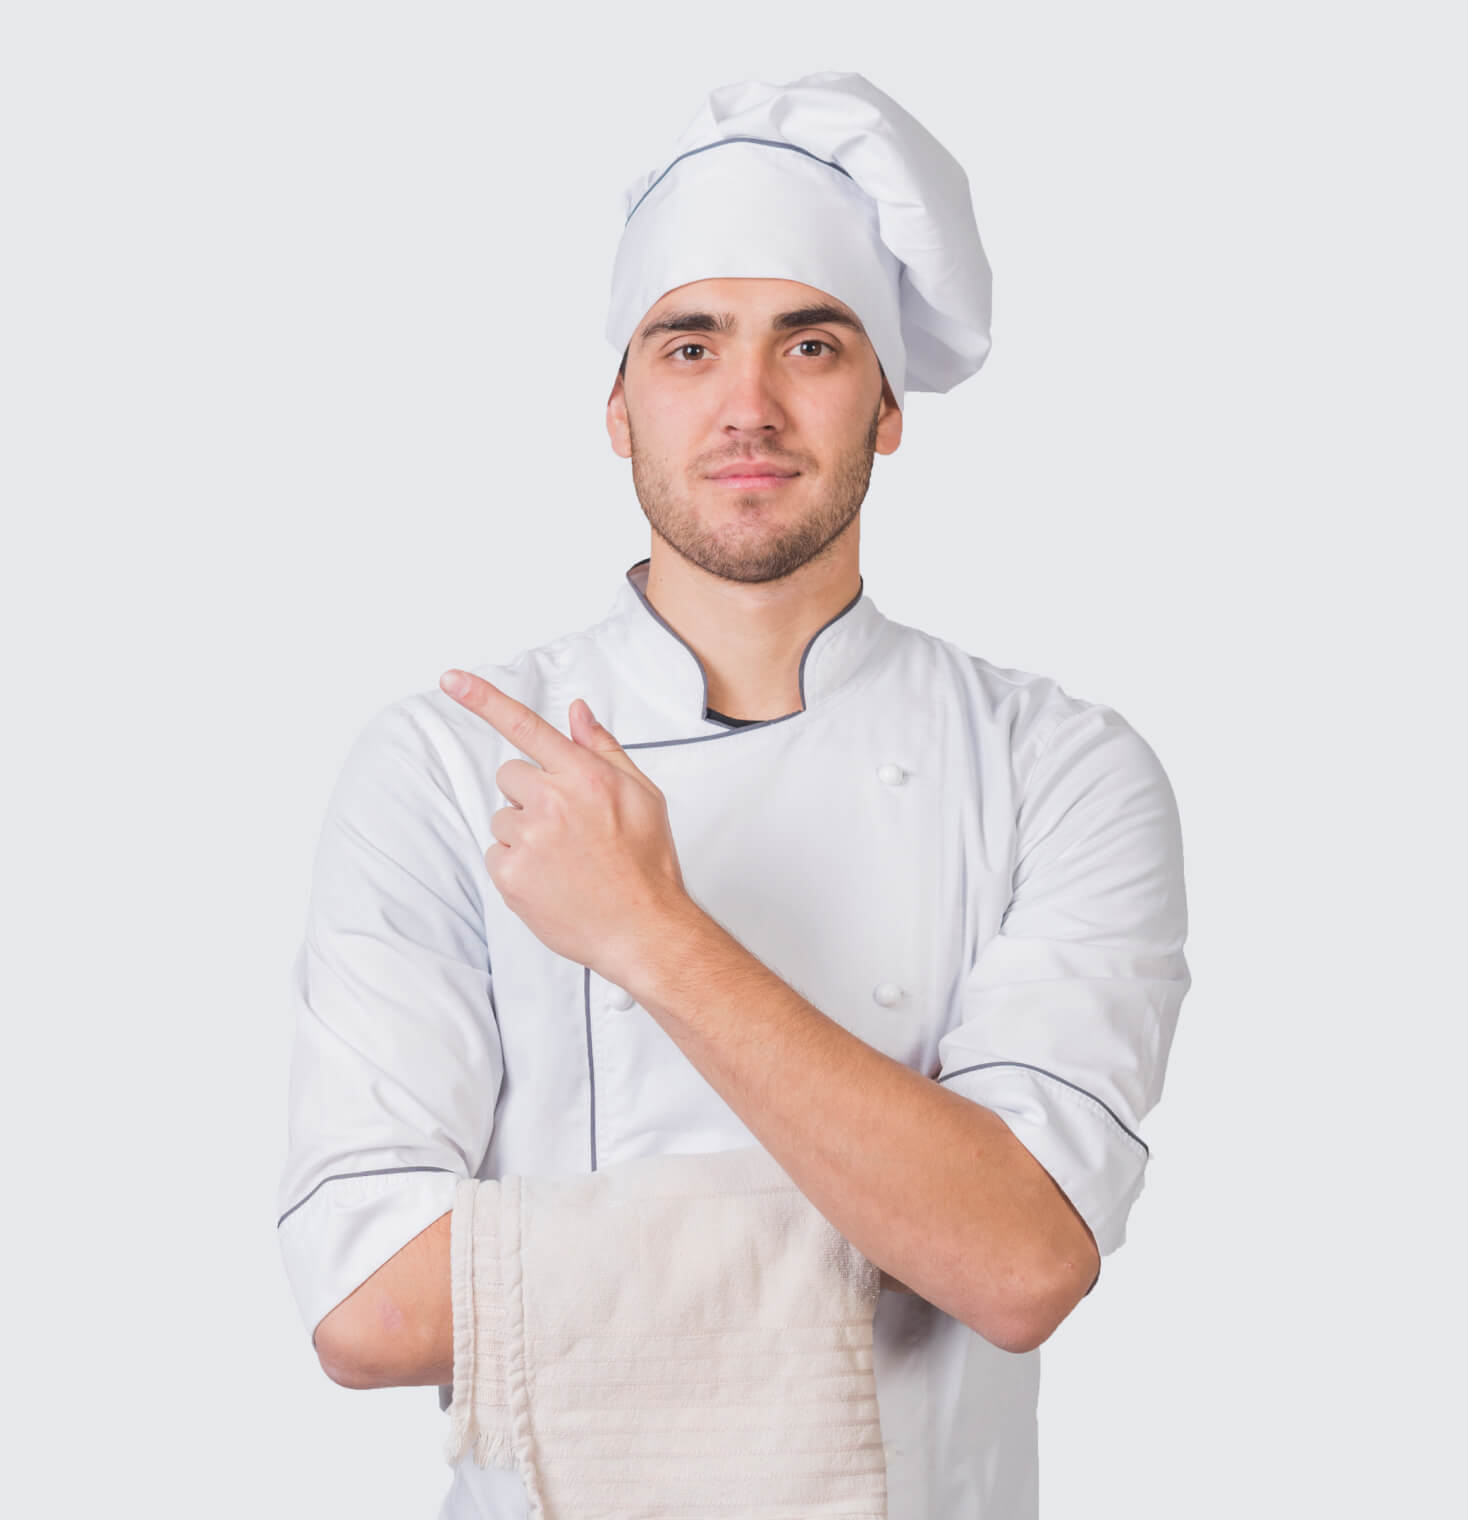 cook-page-food